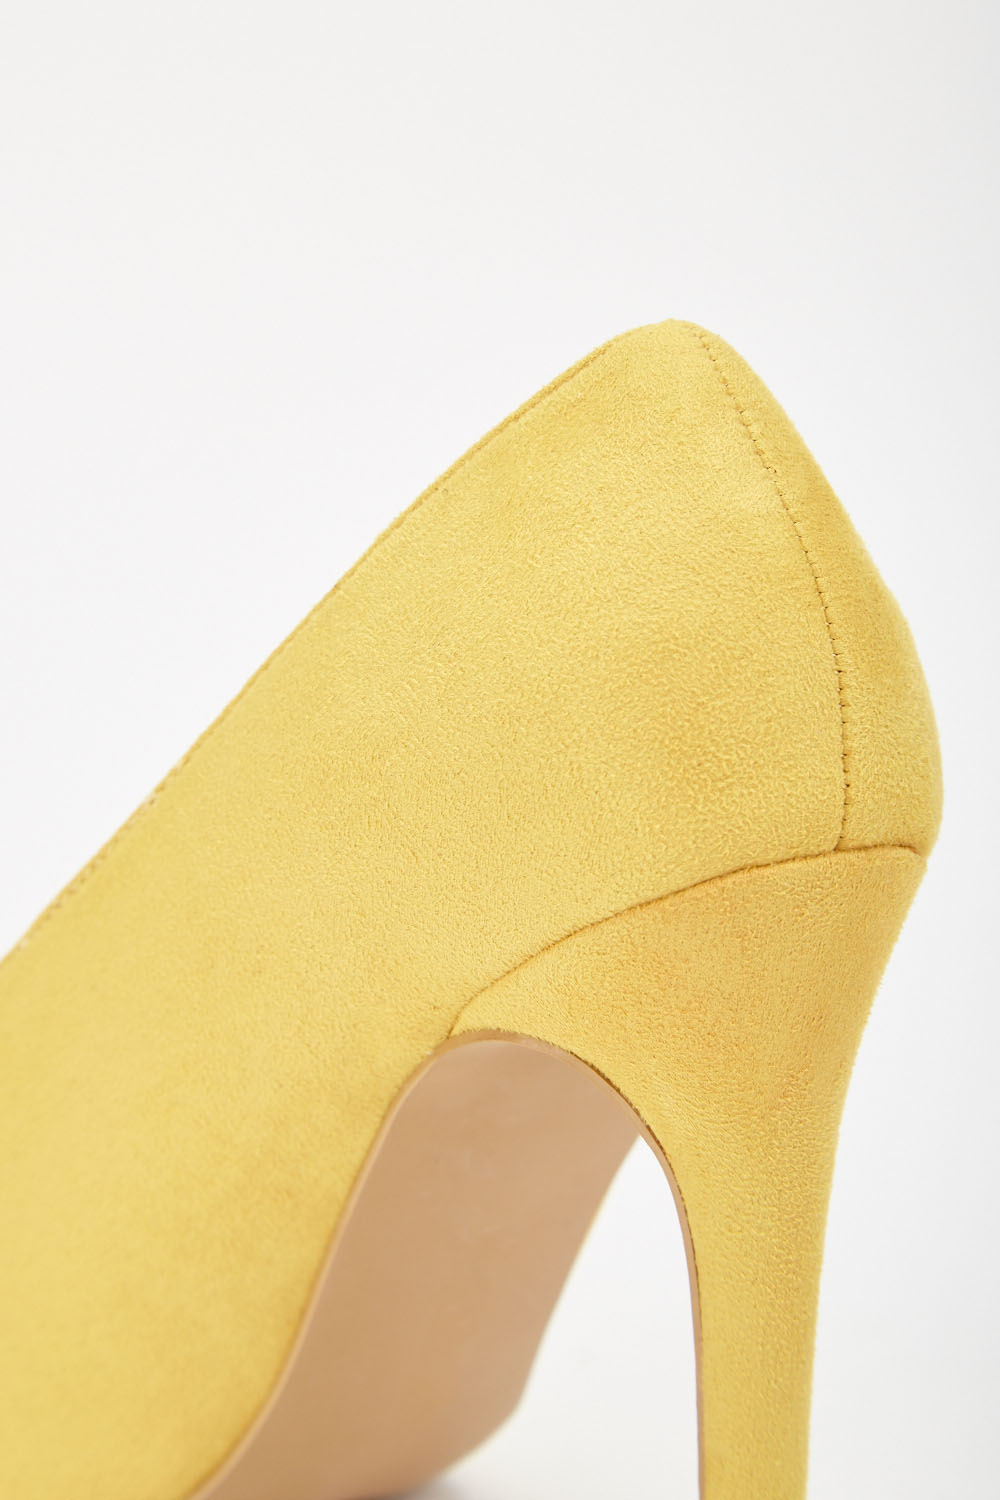 a9a5ed8fa59d LOST INK Tate High Vamp Basic Court Shoes - Yellow - Just £5